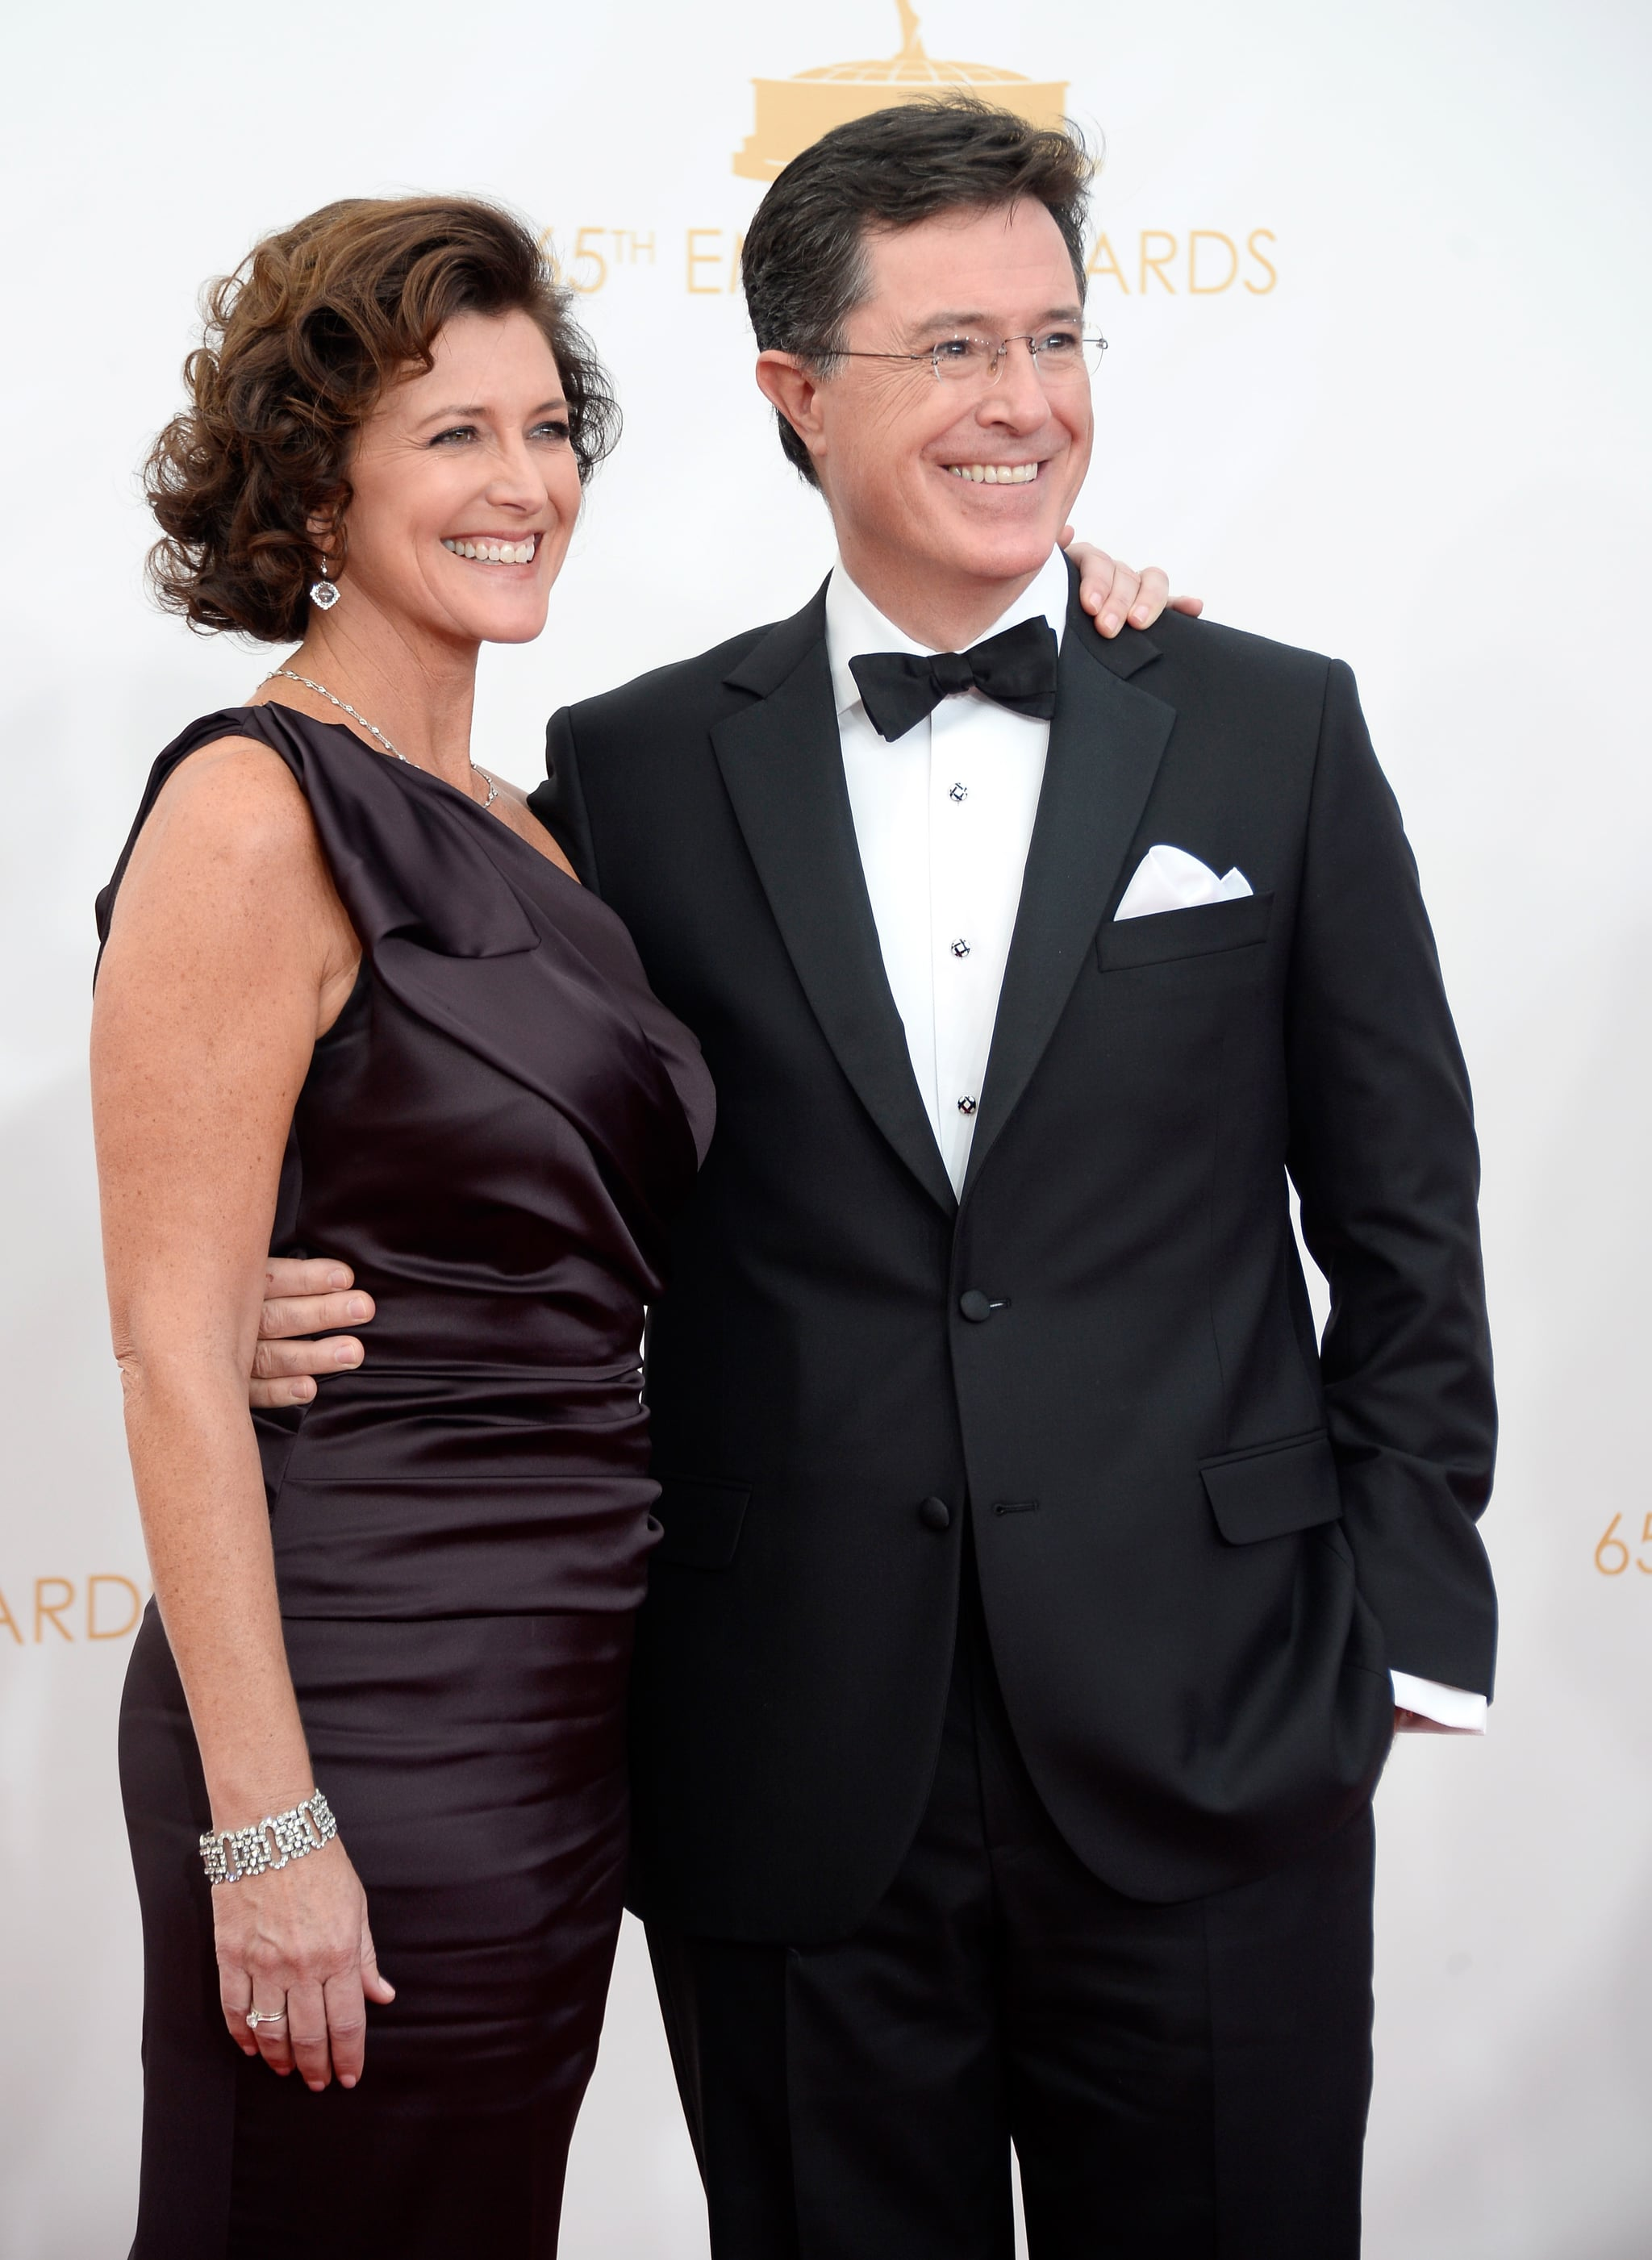 Stephen Colbert and his wife, Evelyn, walked the Emmys red carpet together.